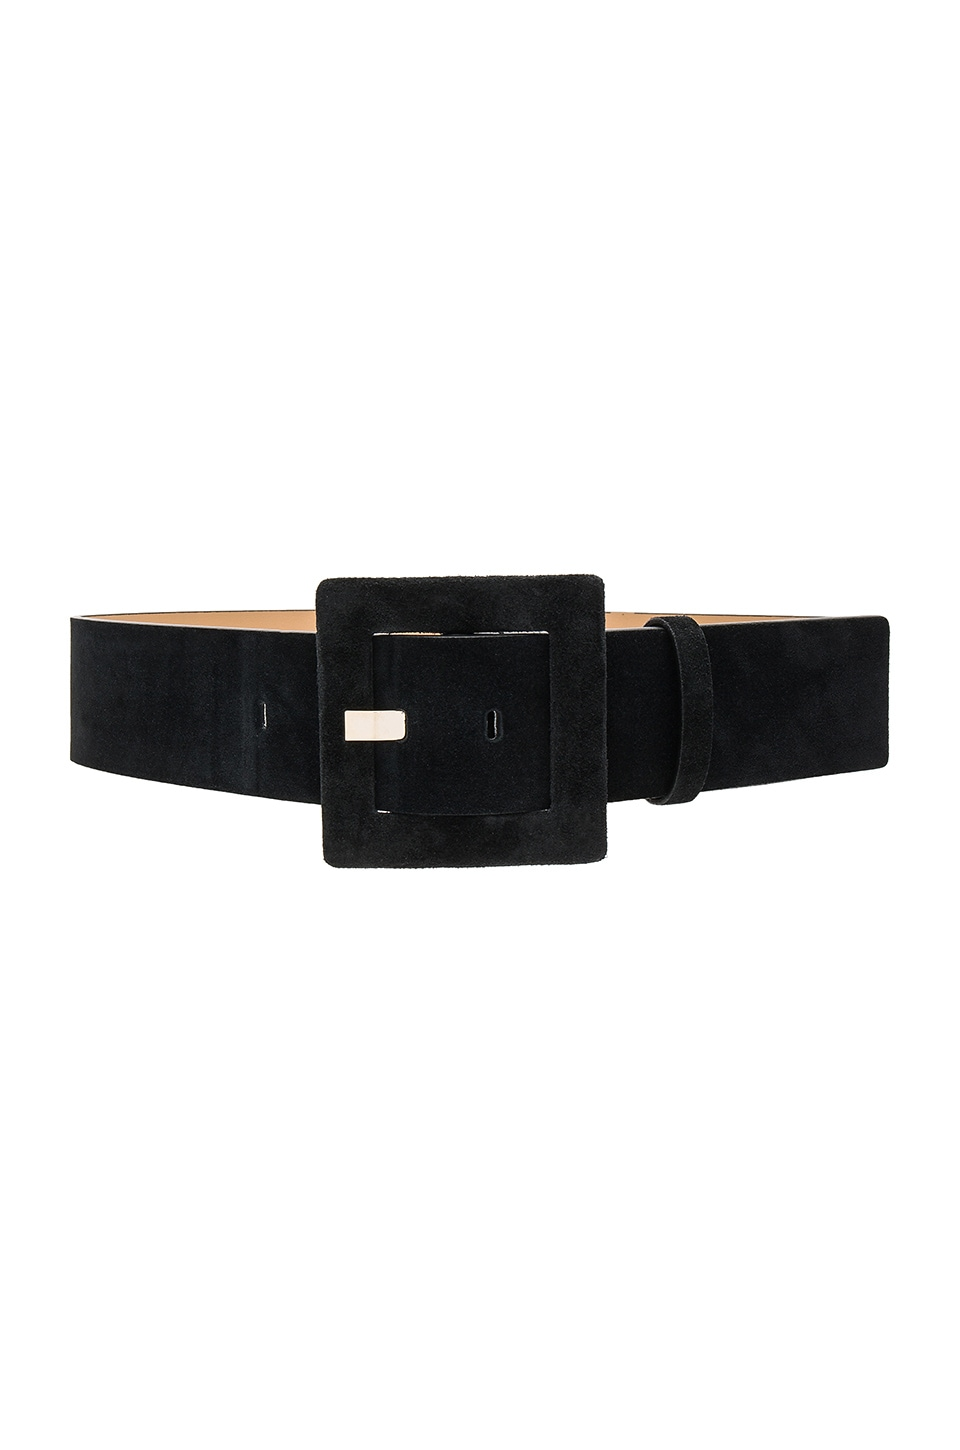 Alice + Olivia Square Buckle Belt in Black